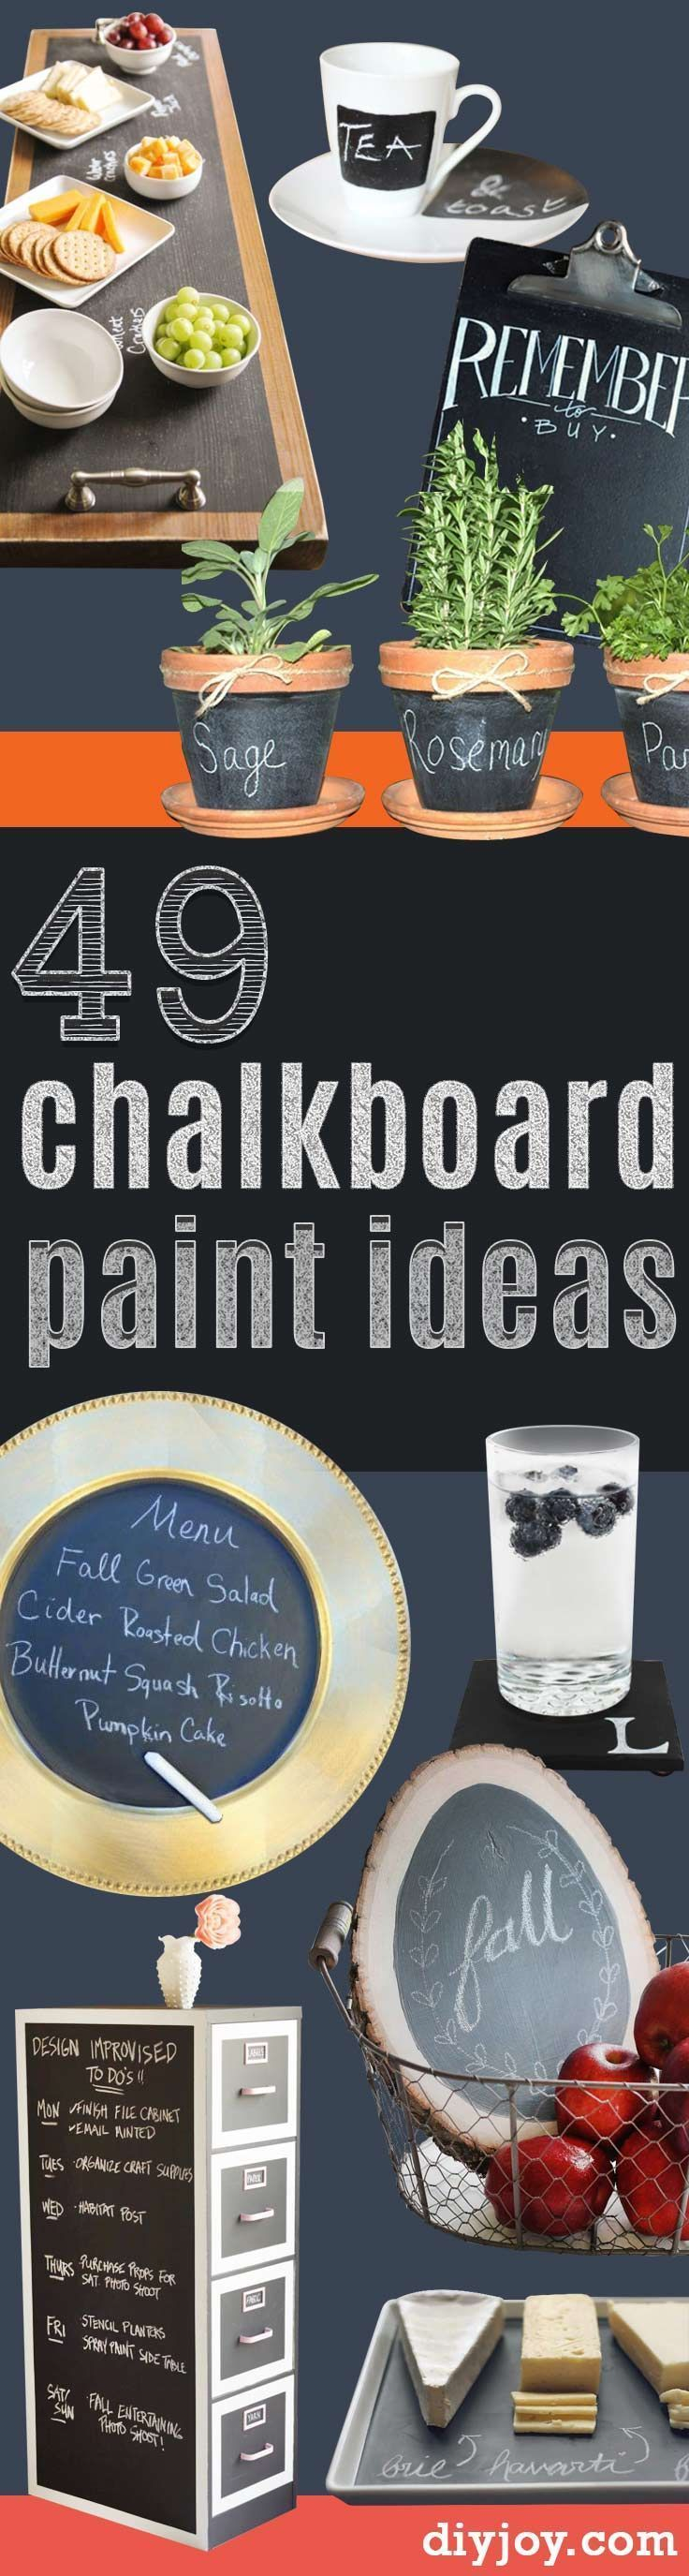 159 best images about research on pinterest furniture for Chalkboard paint ideas for kitchen